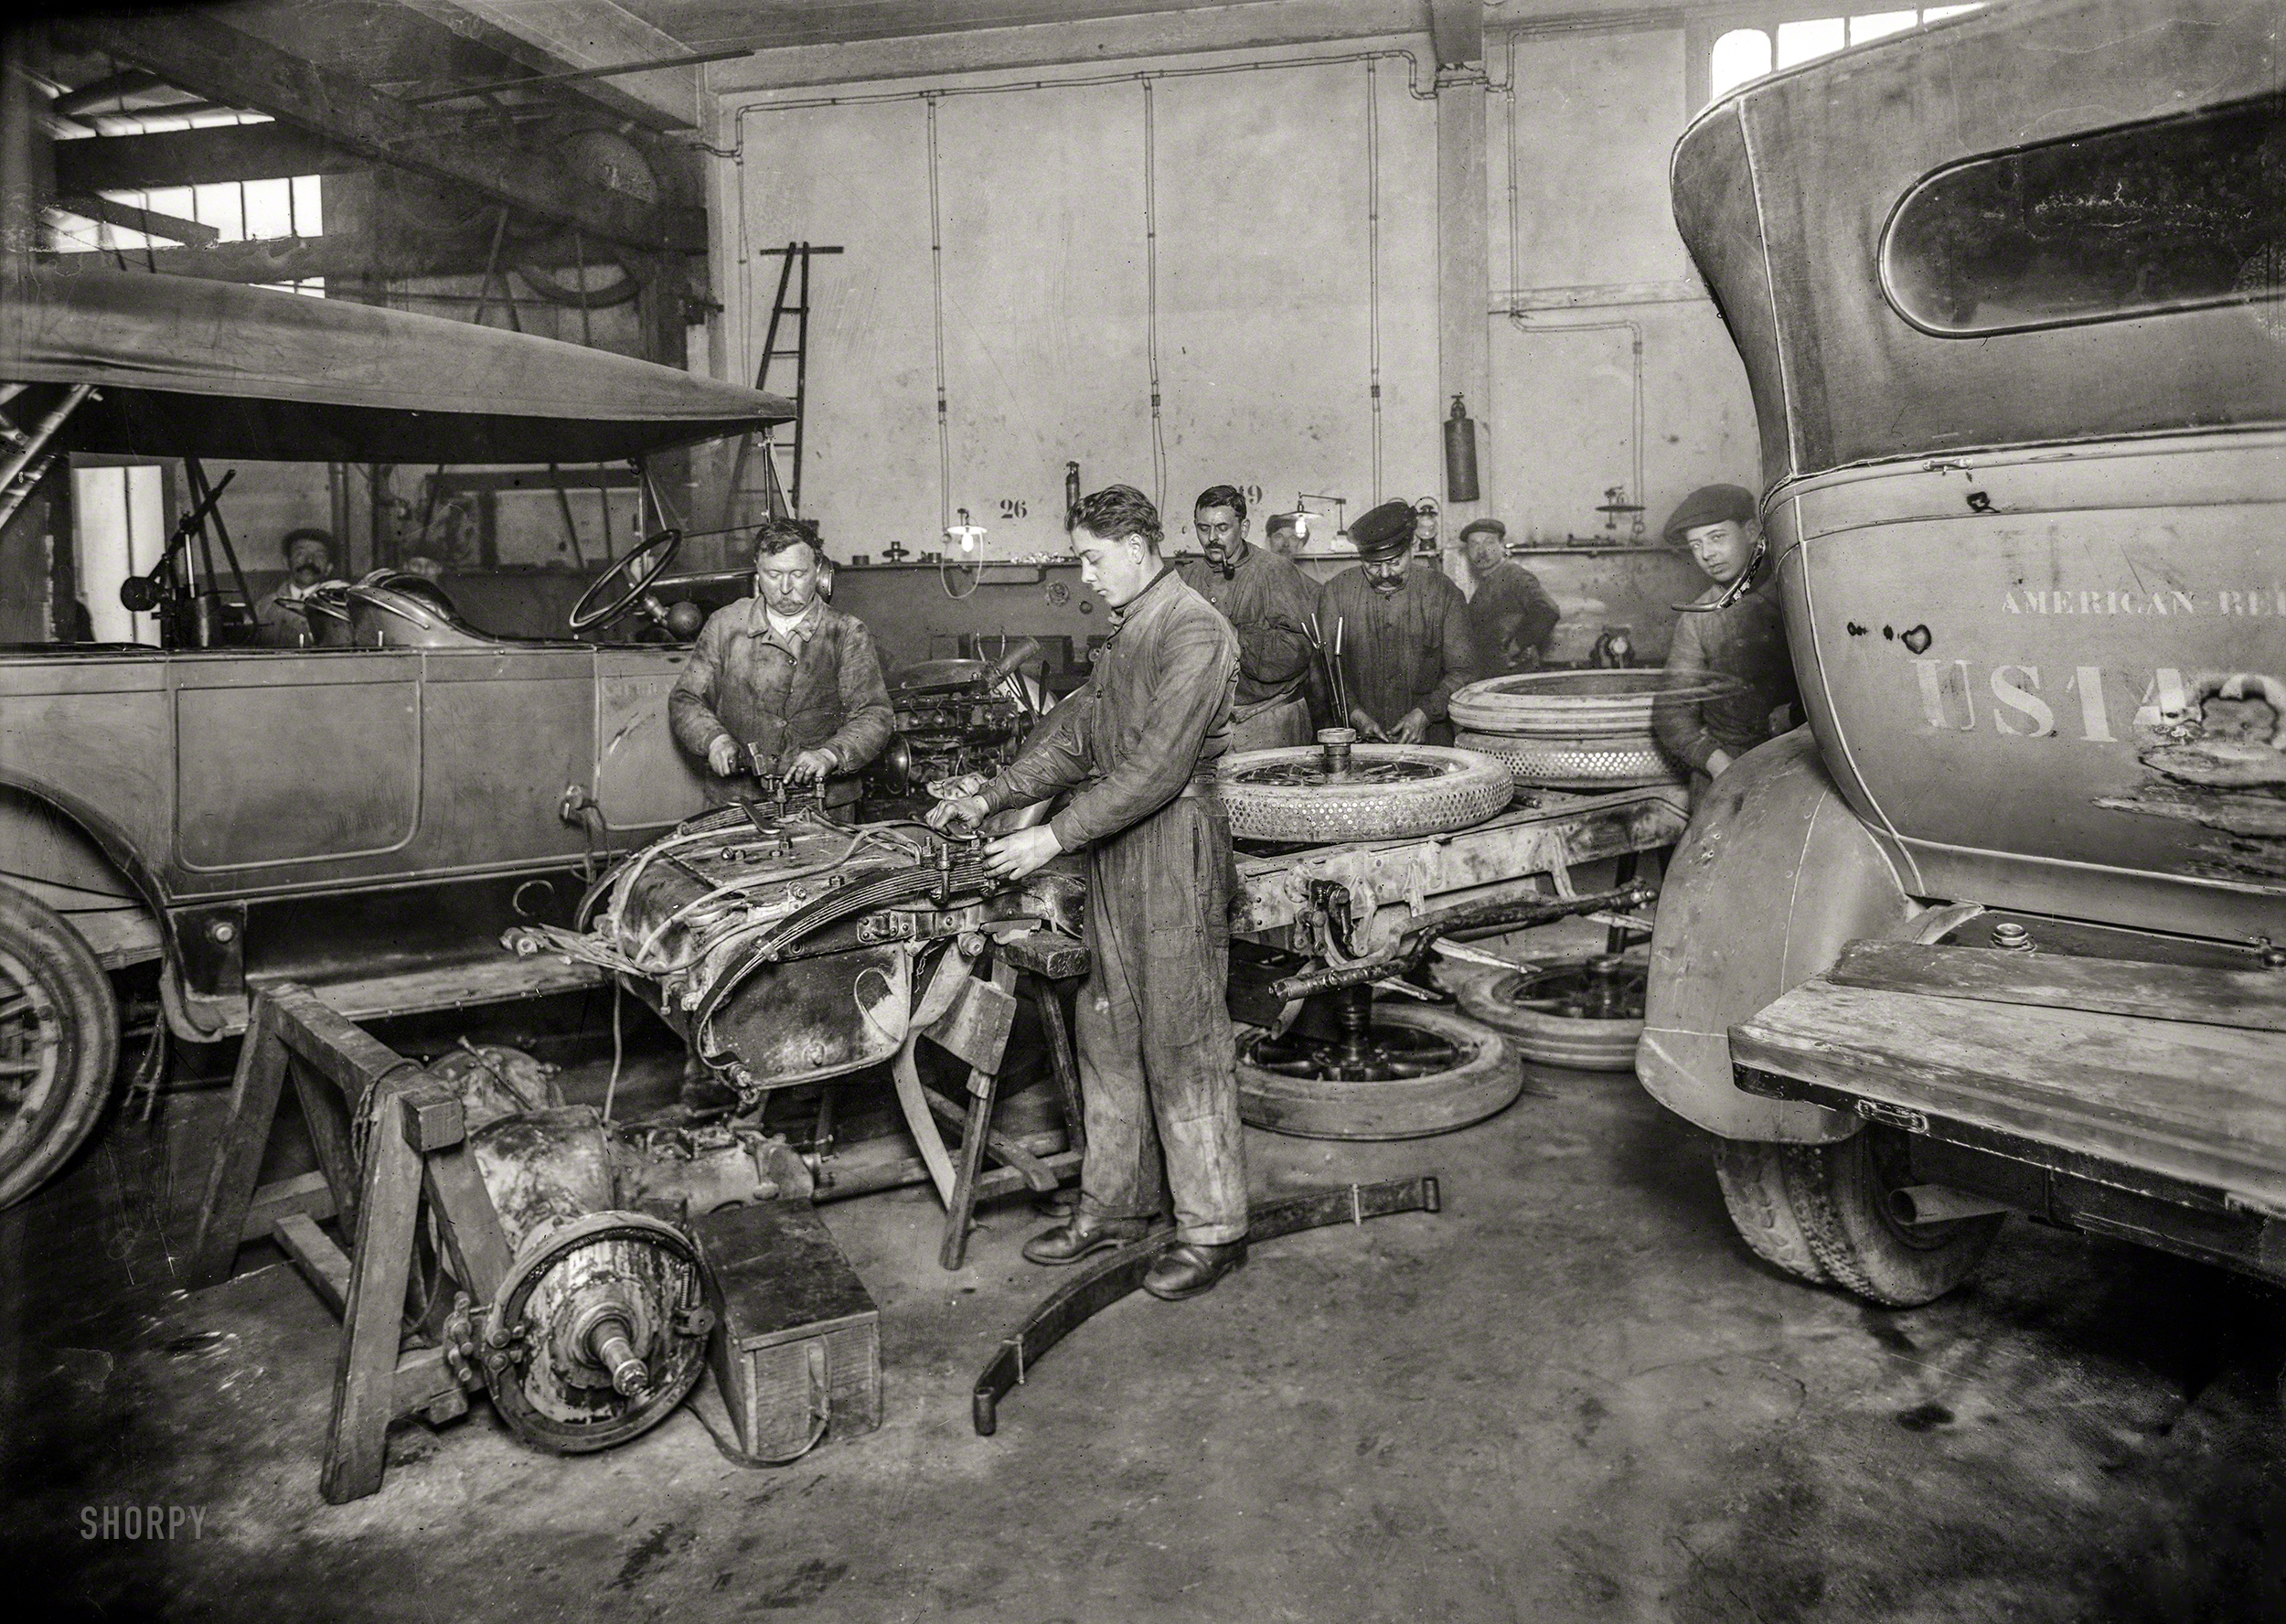 Shorpy Historic Picture Archive :: Intensive Car Care